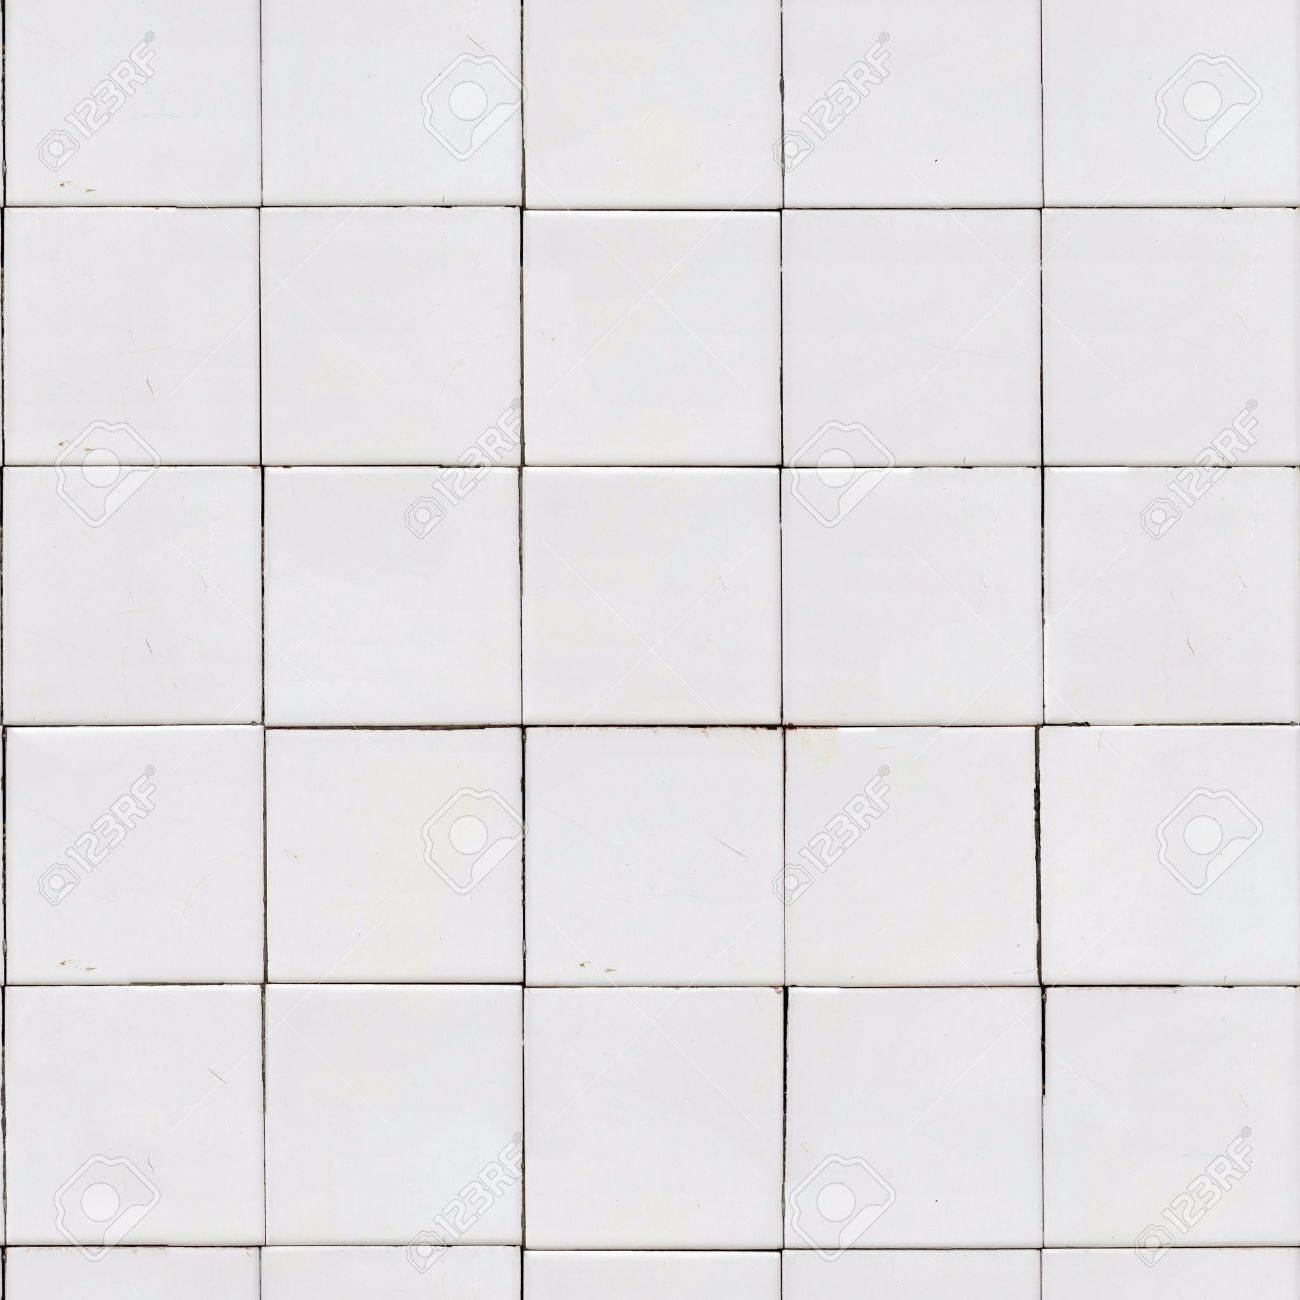 tileable tile texture.  Tile Stock Photo  White Old Tile Wall Seamless Tileable Texture In U